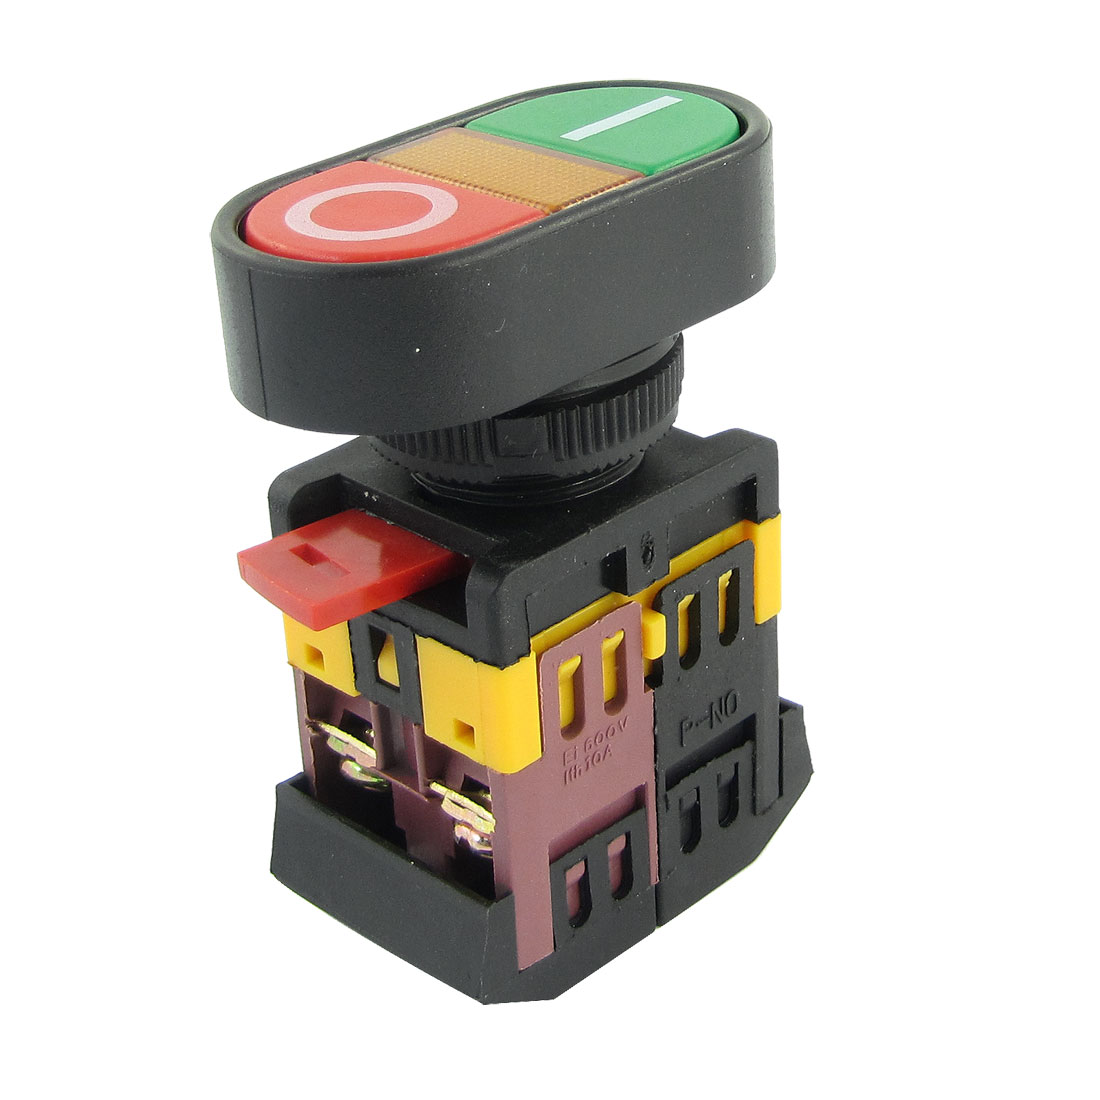 AC 600V 10A ON OFF START STOP Momentary Pushbutton Switch with 220V Neon Light